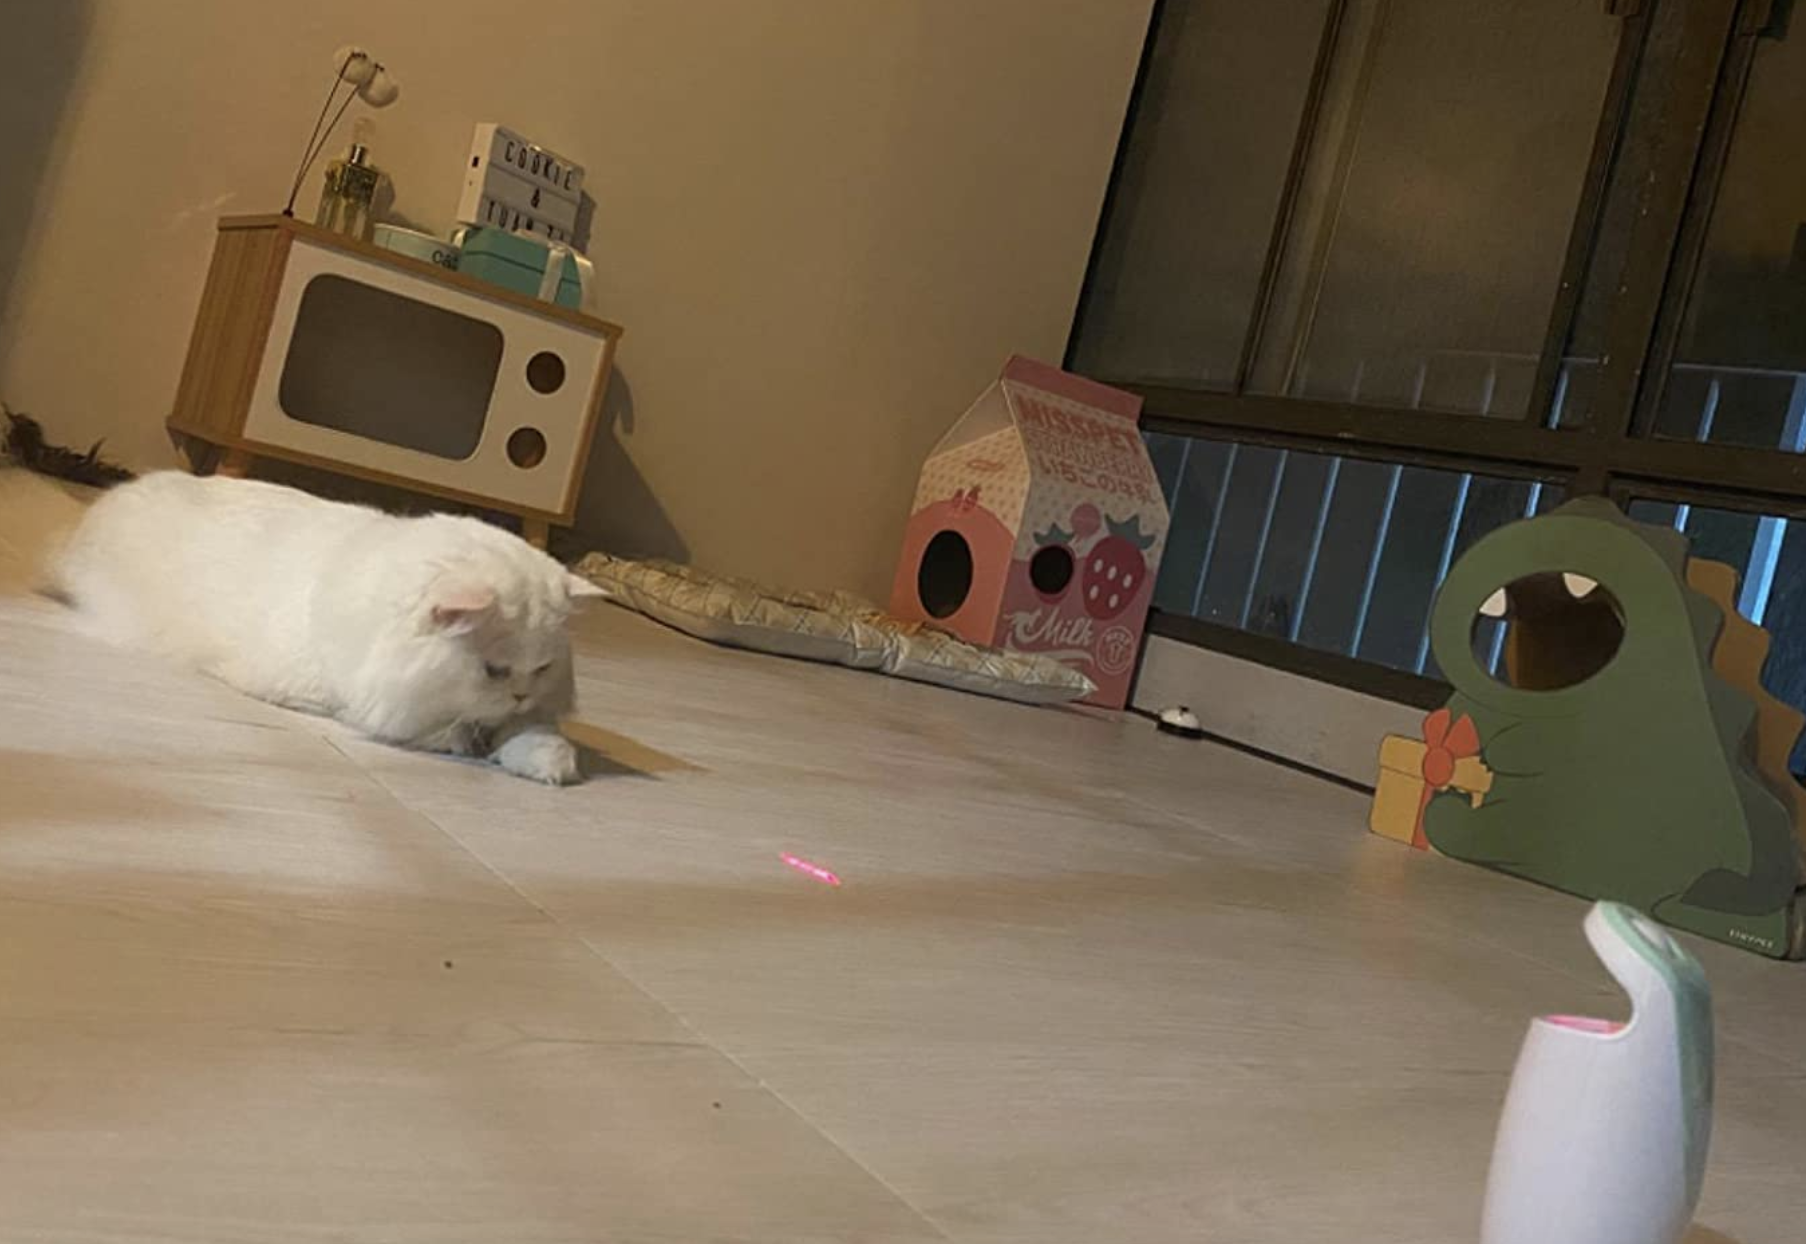 a fluffy white cat staring at a laser on the floor